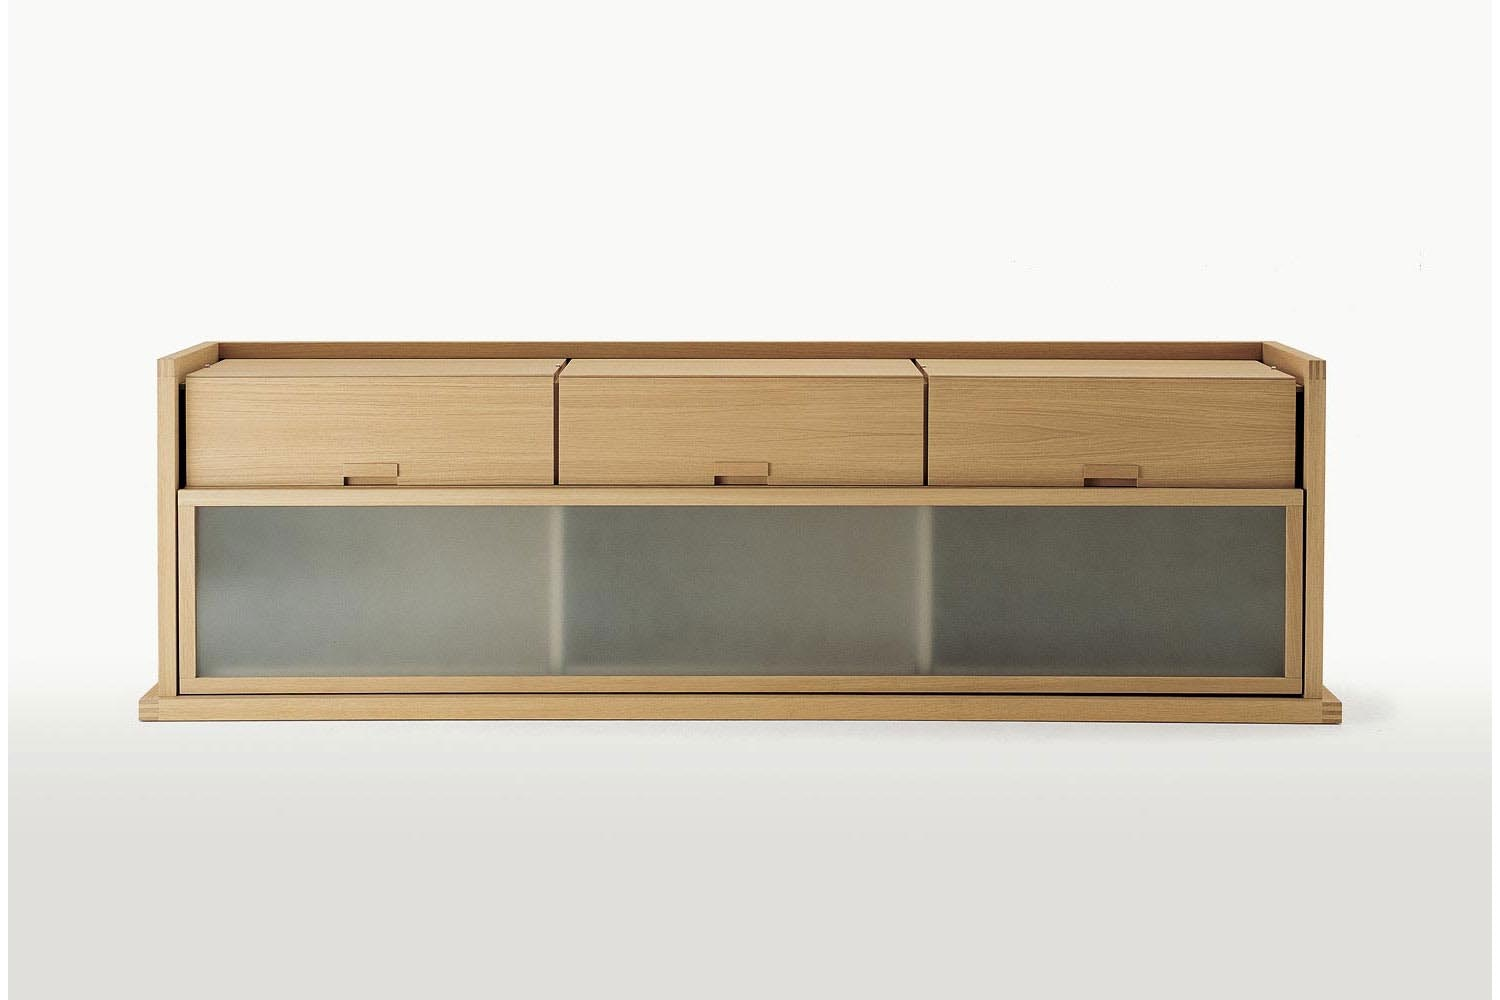 Incipit Storage Unit by Antonio Citterio for Maxalto